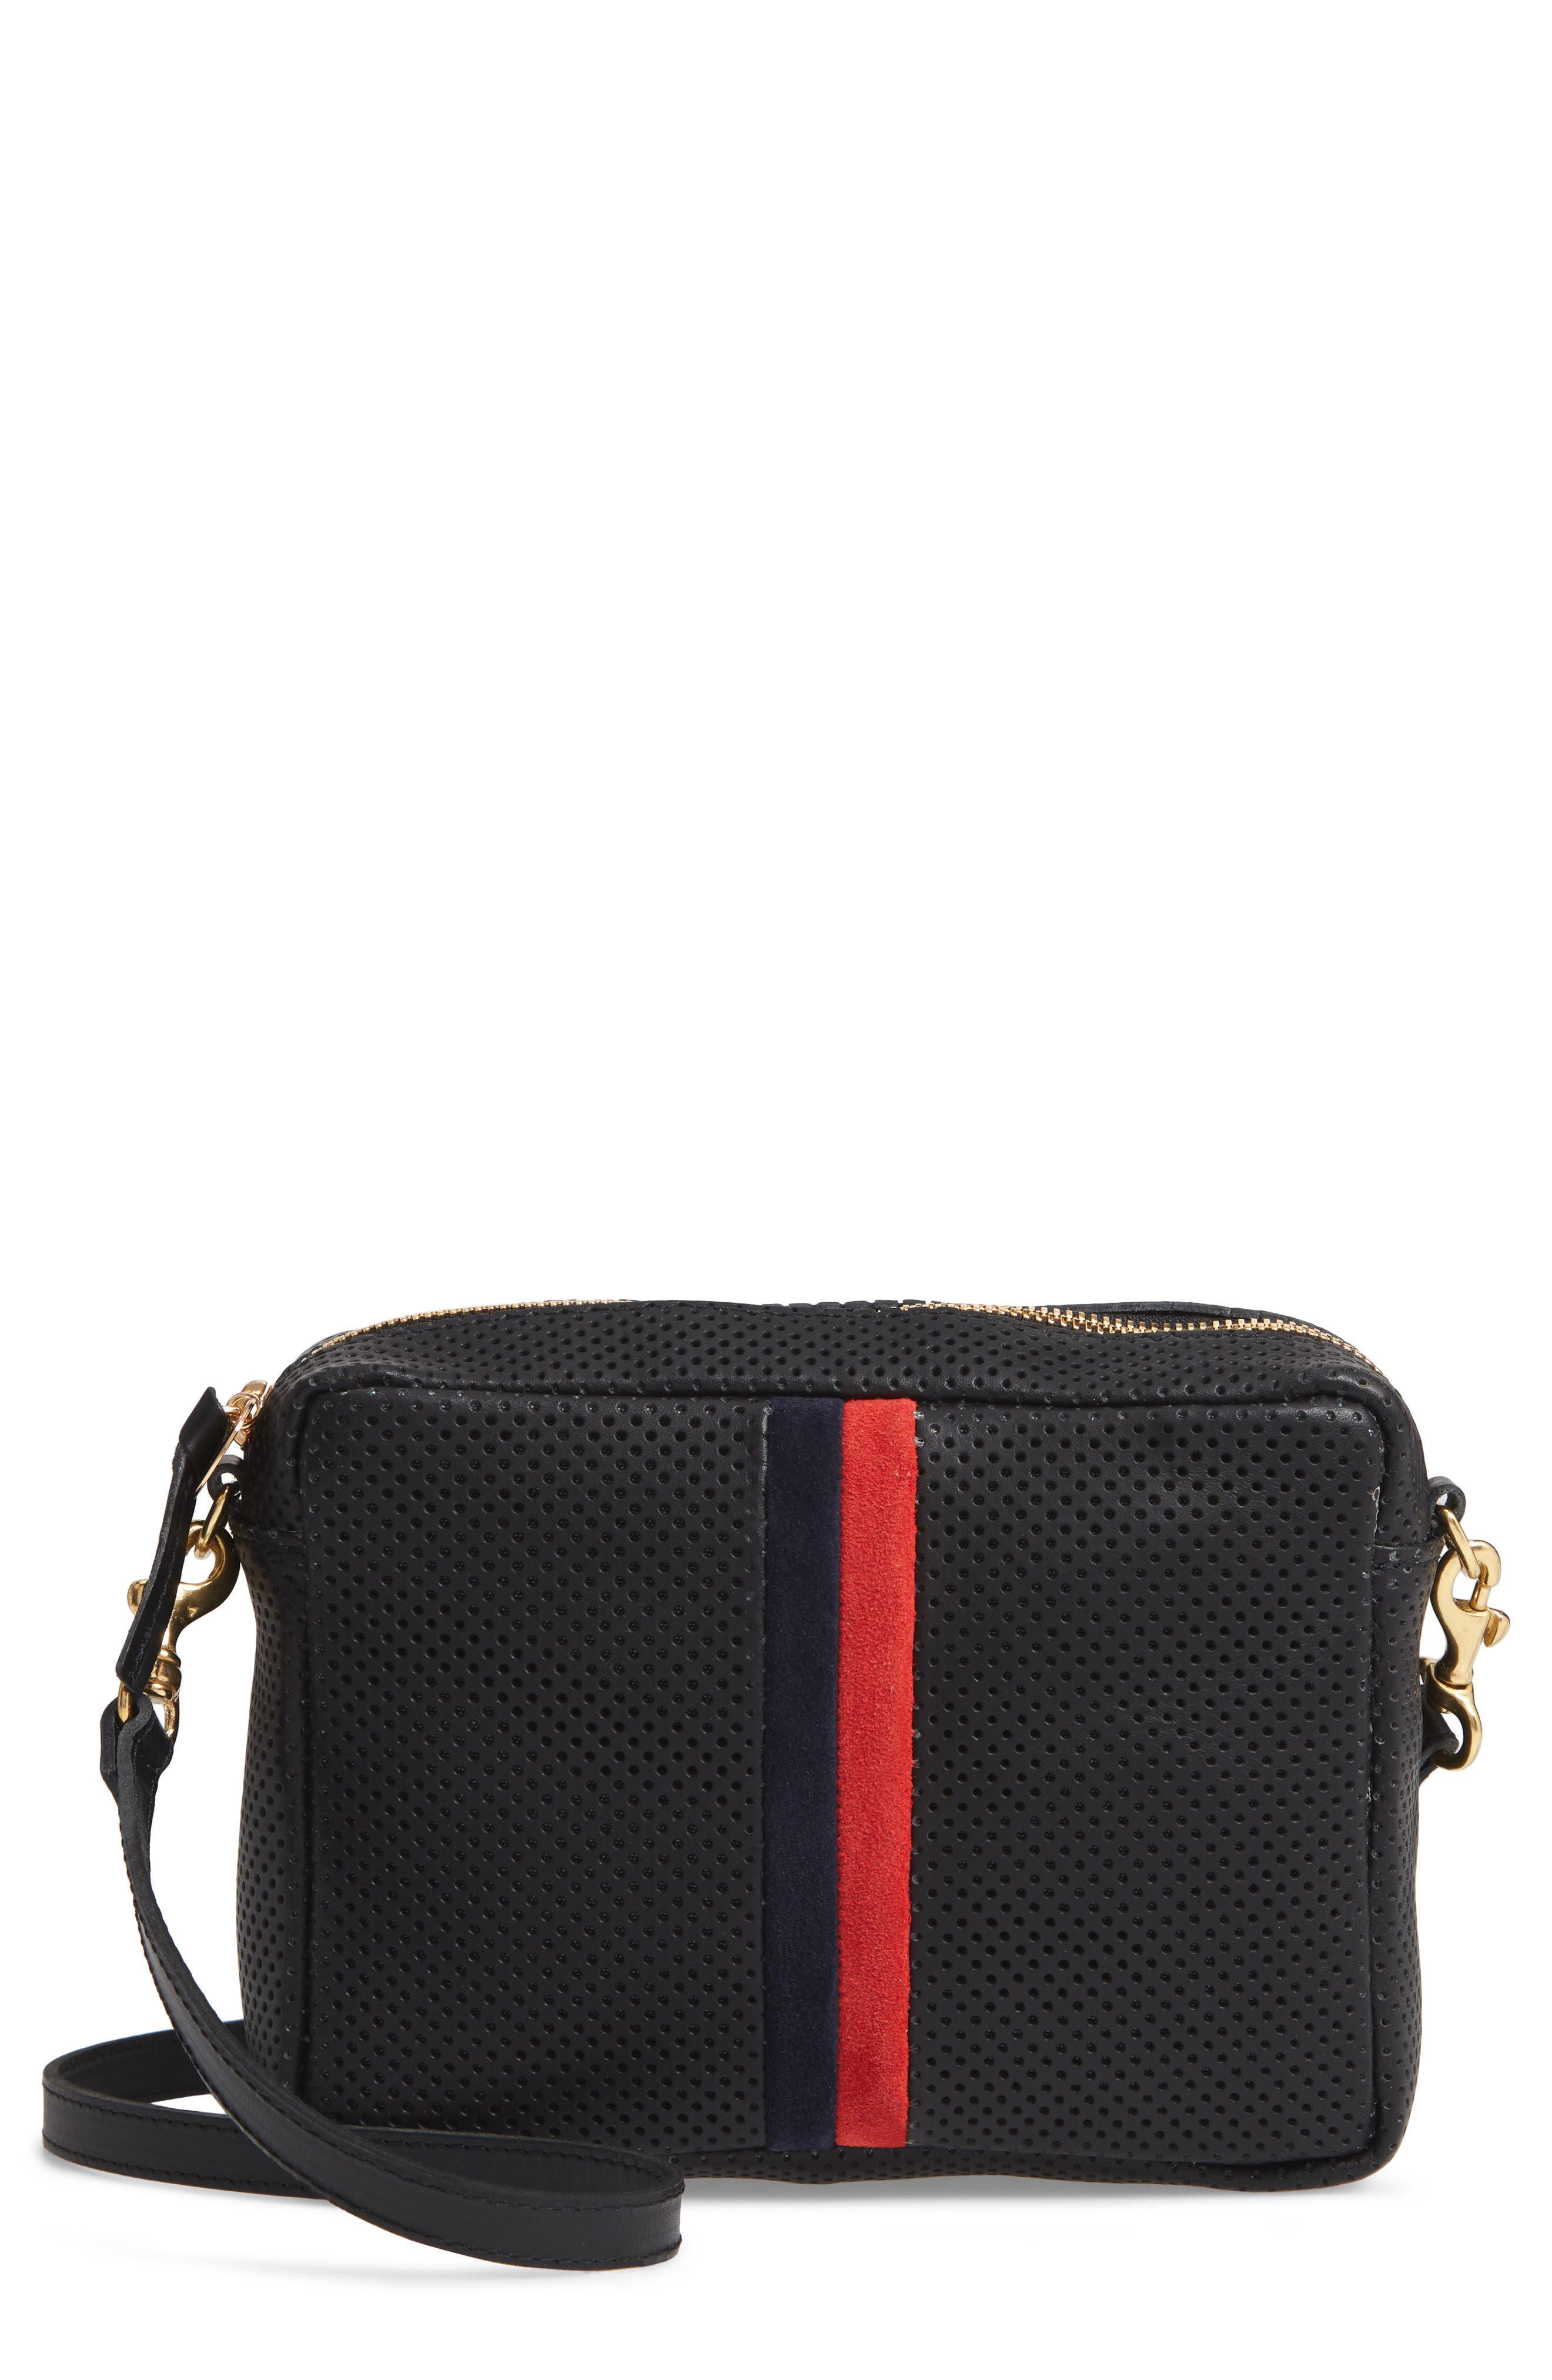 CLARE V Midi Sac Perforated Leather Crossbody Bag - Black in Black Perf With Navy